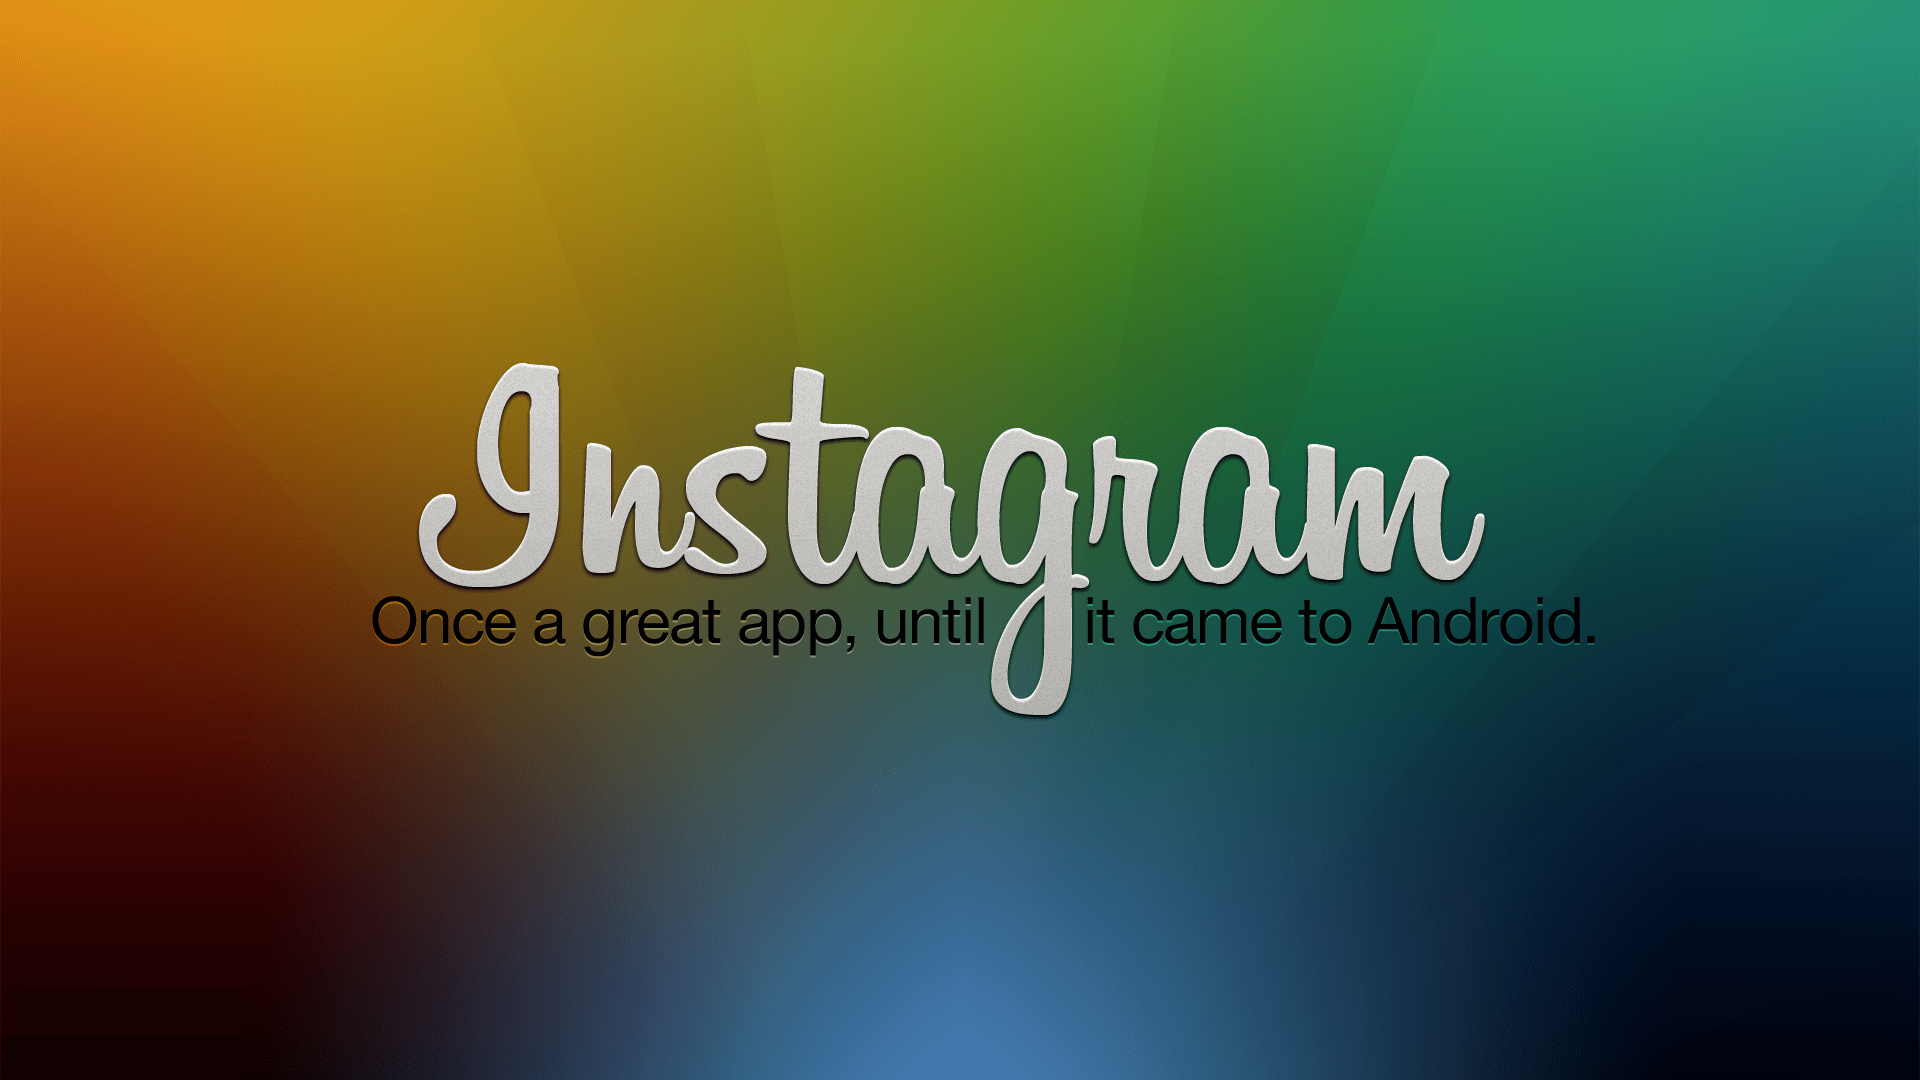 Instagram Wallpaper: Instagram Logo Wallpapers